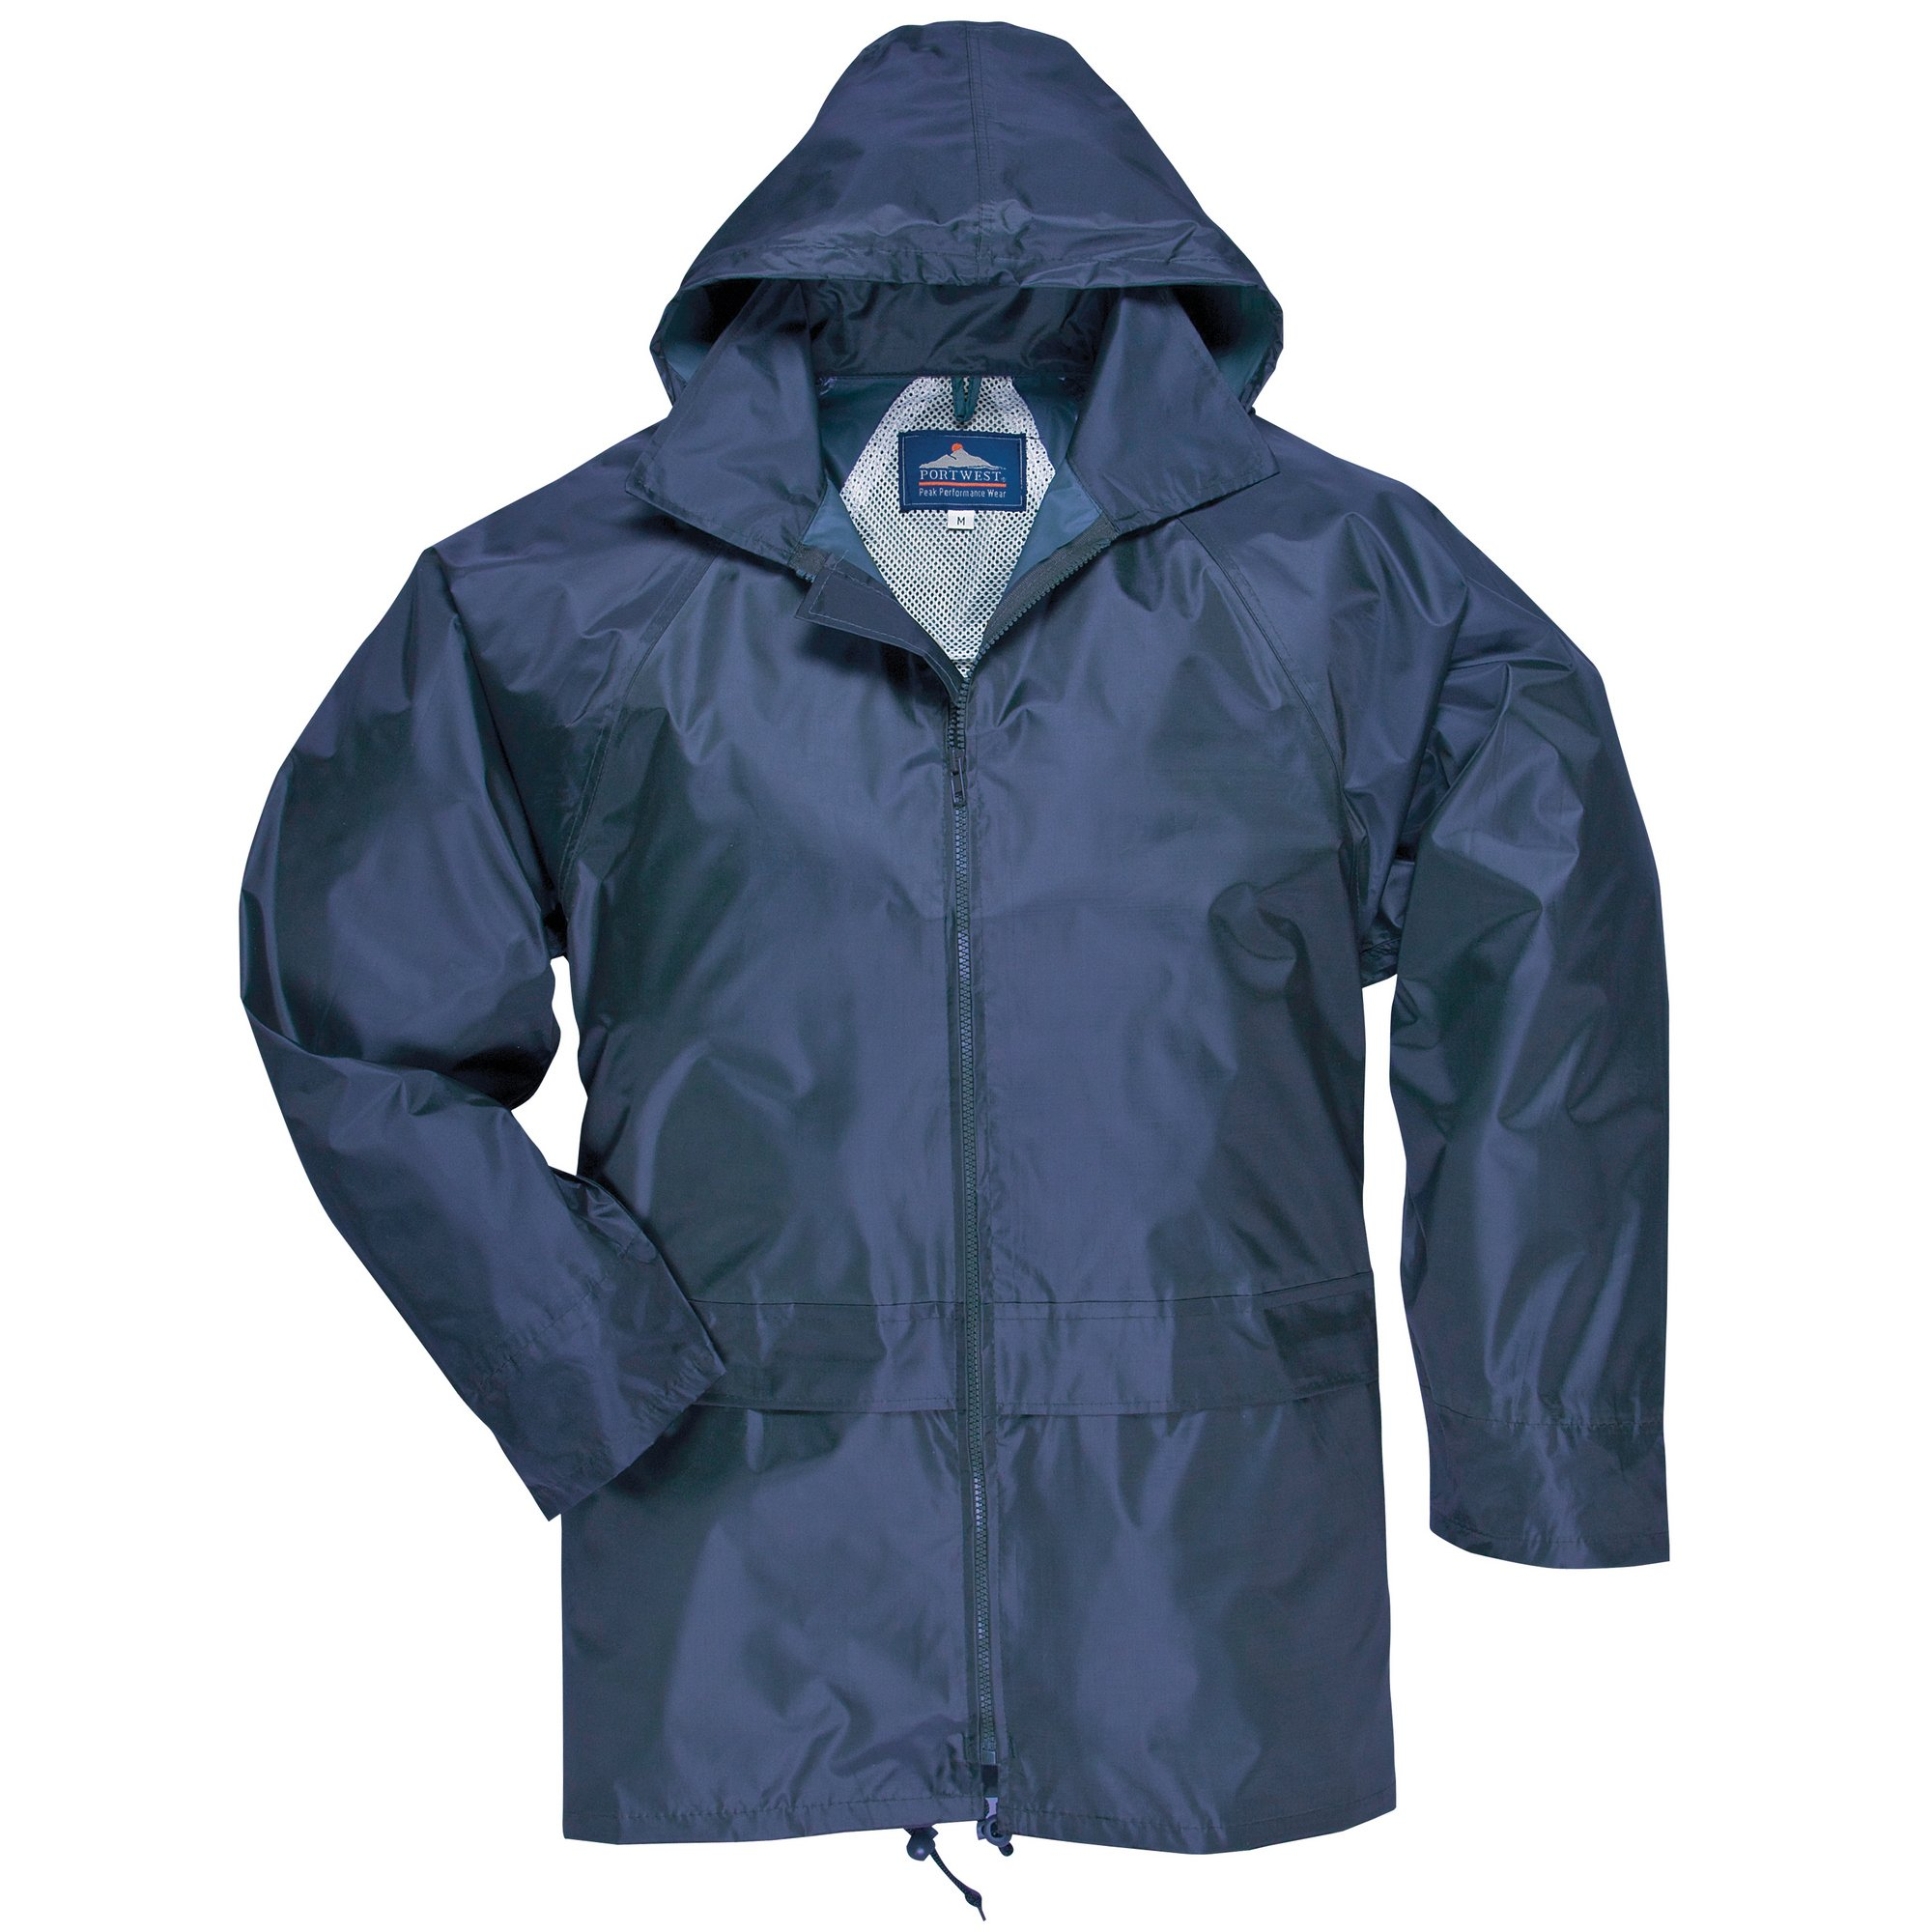 Portwest Classic Rain Jacket - Navy - L by Portwest